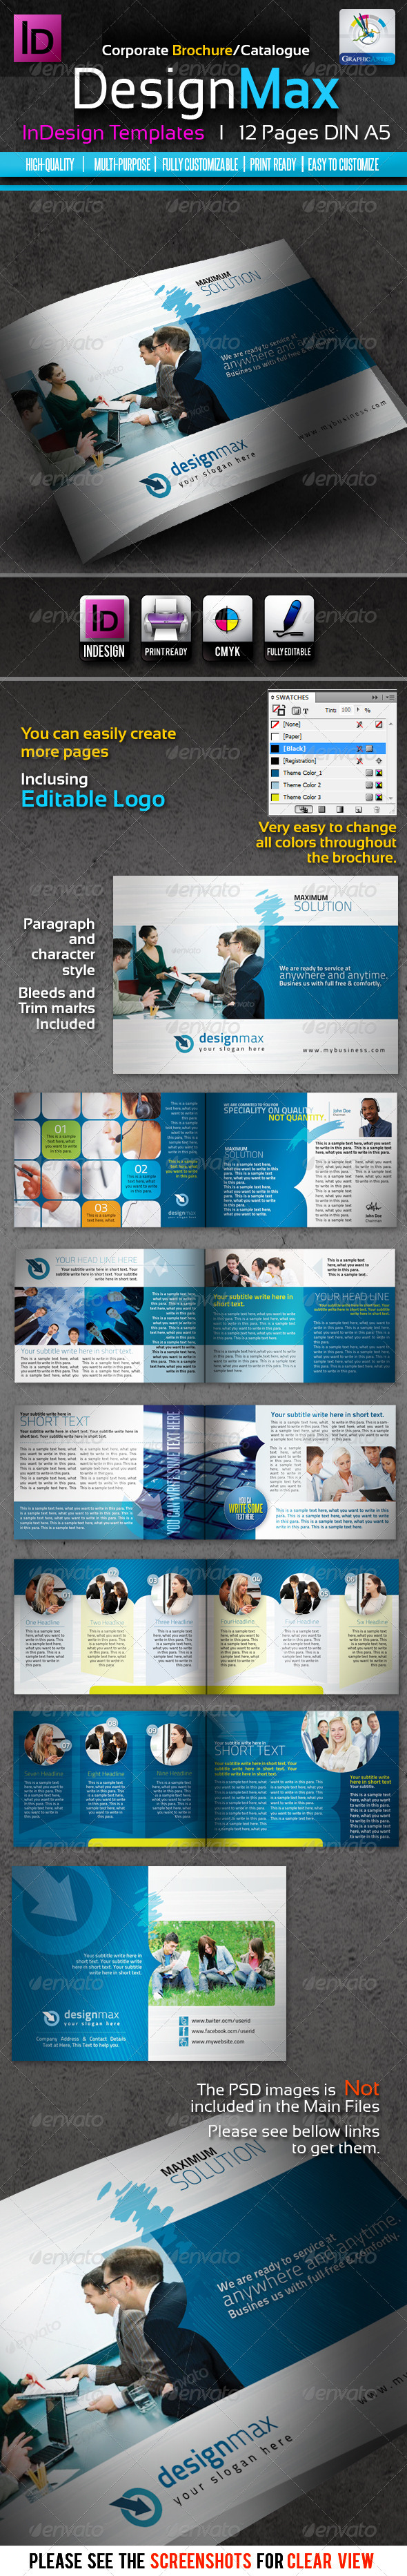 DesignMax InDesign Brochure/Catalogue 12pages - Corporate Brochures